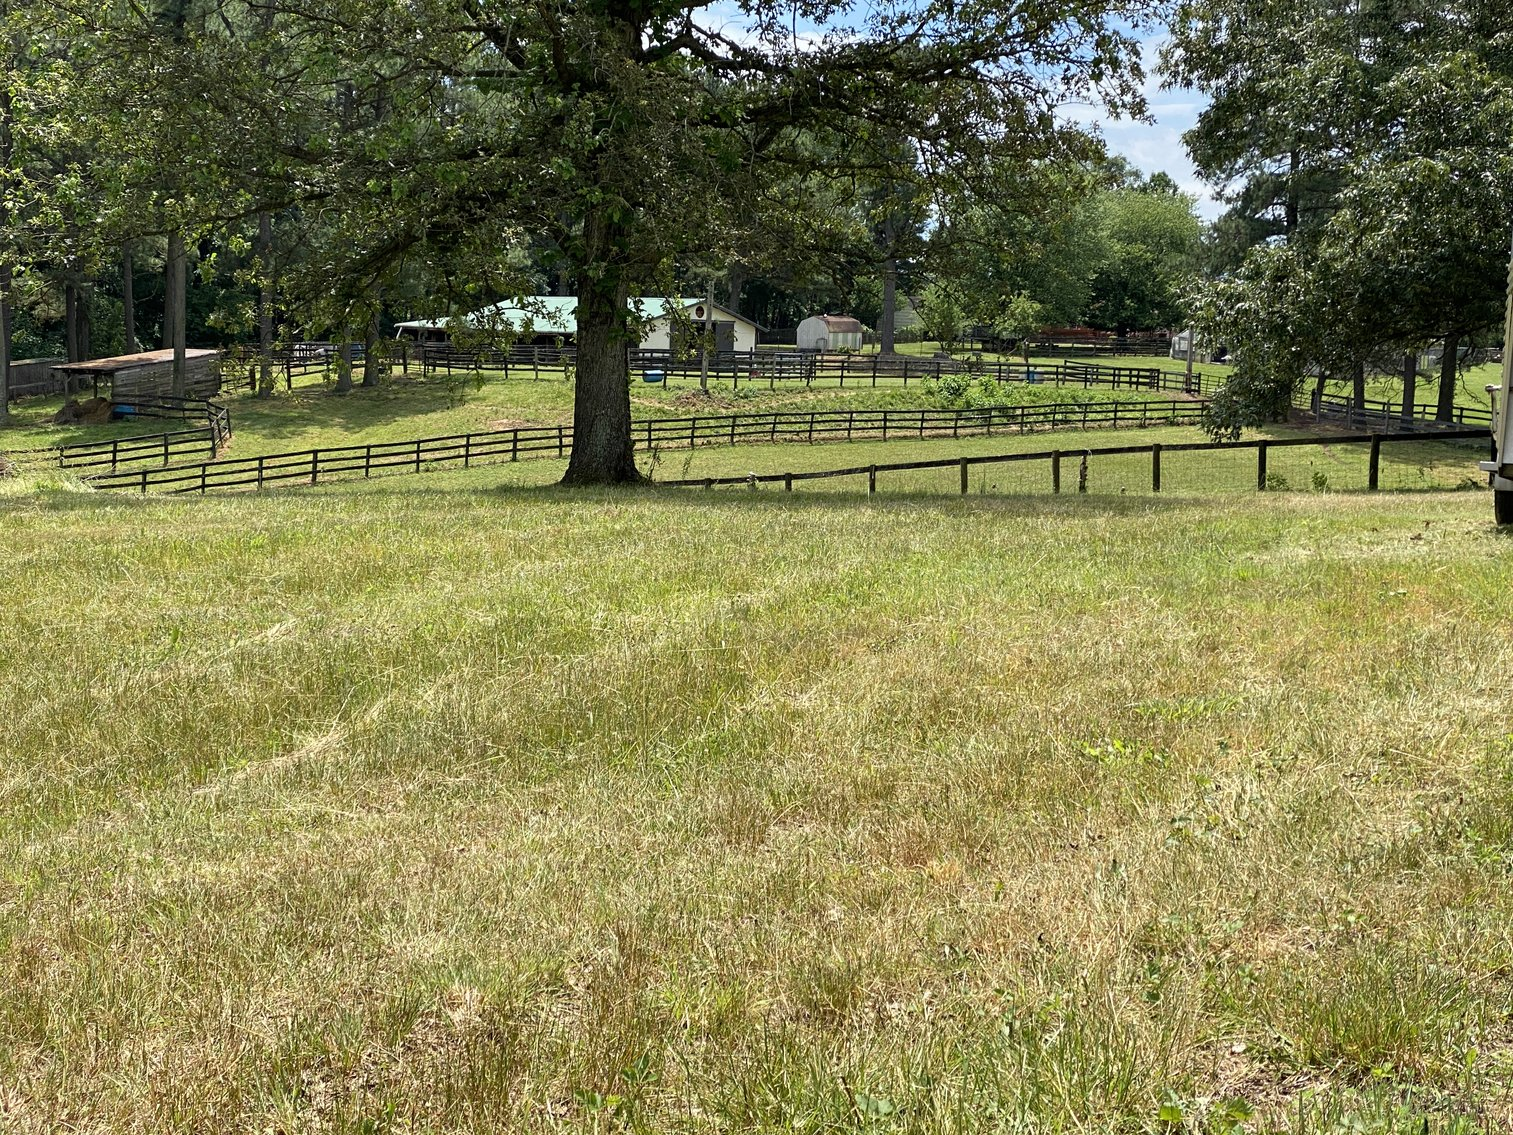 Image for 12 +/- Acre Parcel w/62'x70' Clear Span Building & Fencing in Orange County, VA